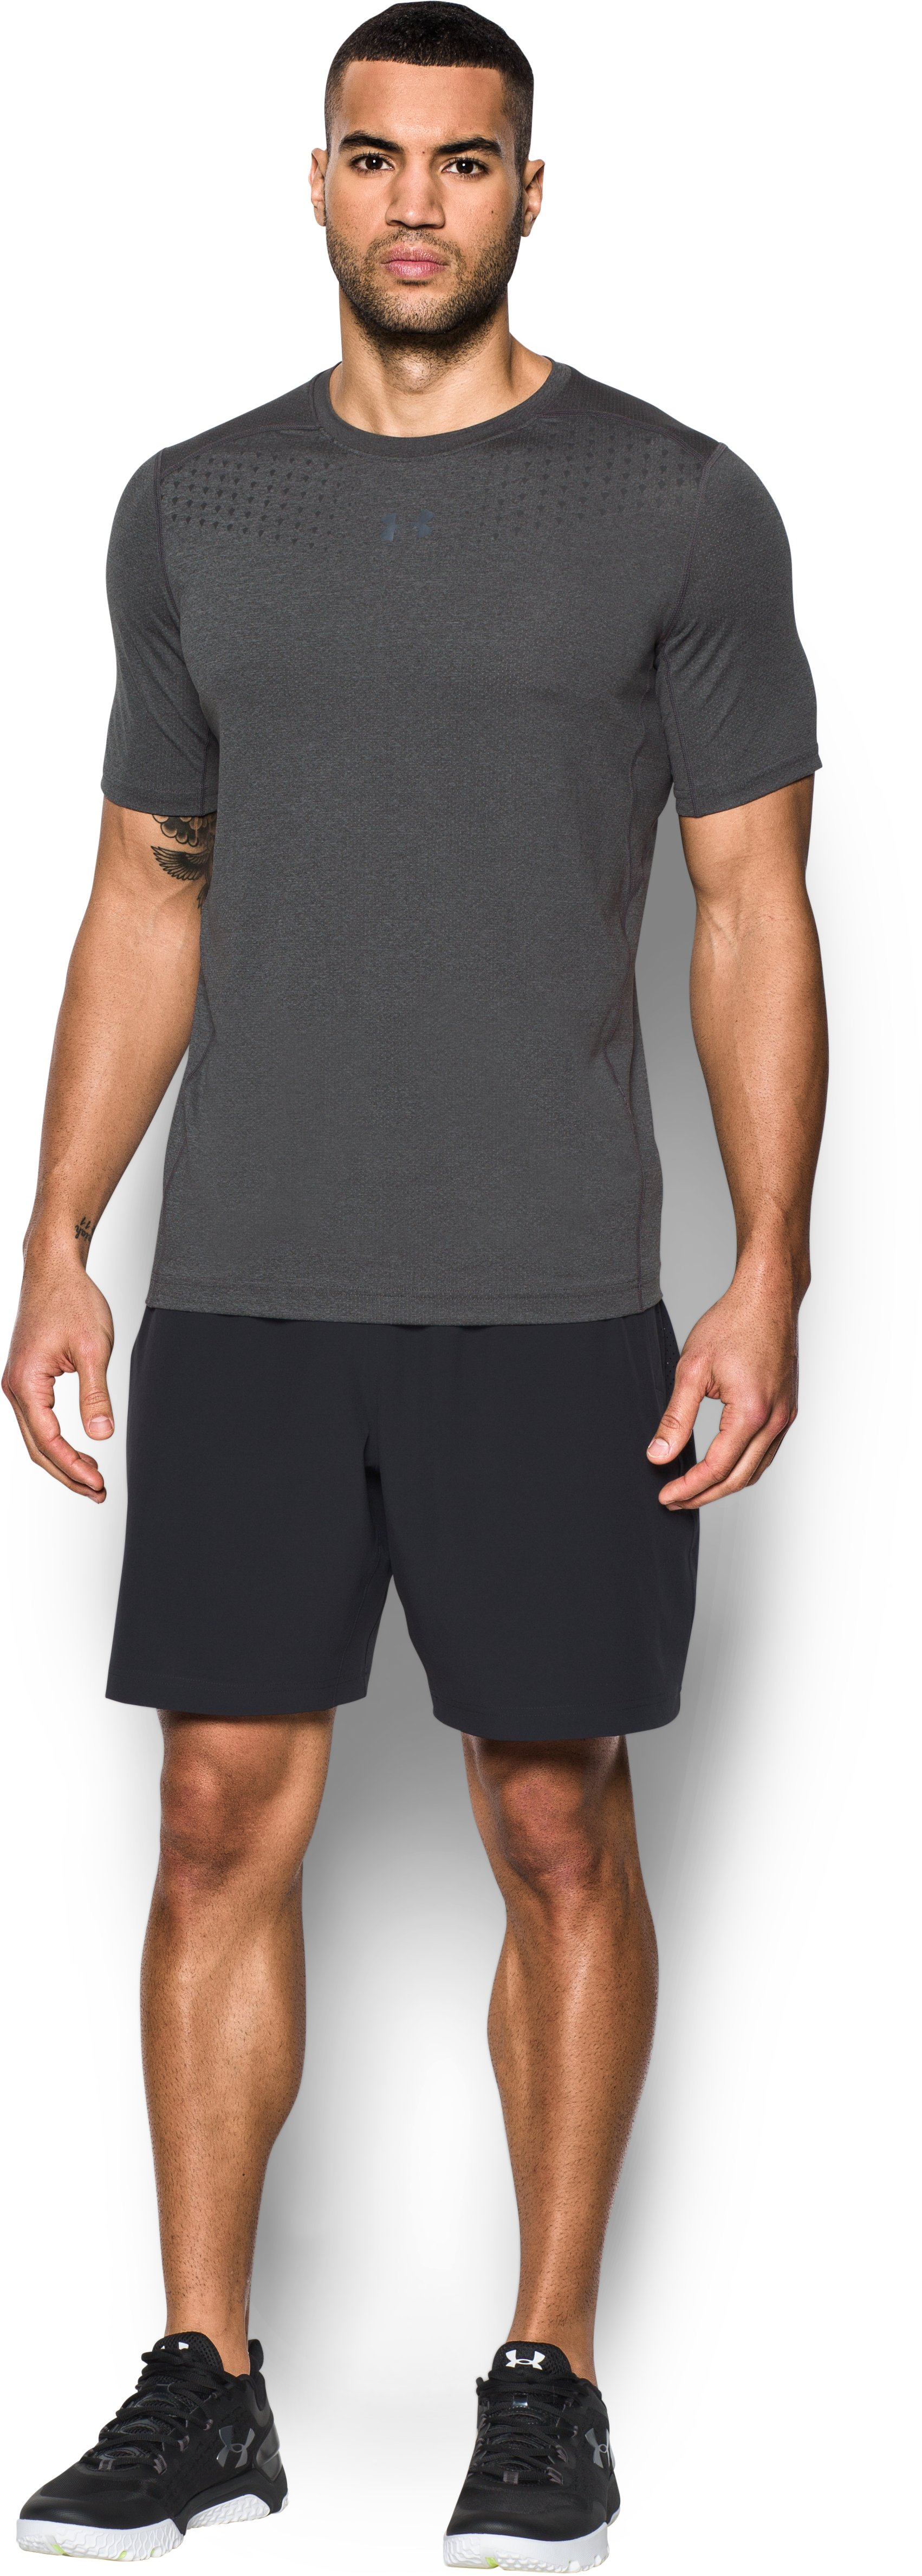 Men's HeatGear® CoolSwitch Twist Fitted Short Sleeve, Carbon Heather